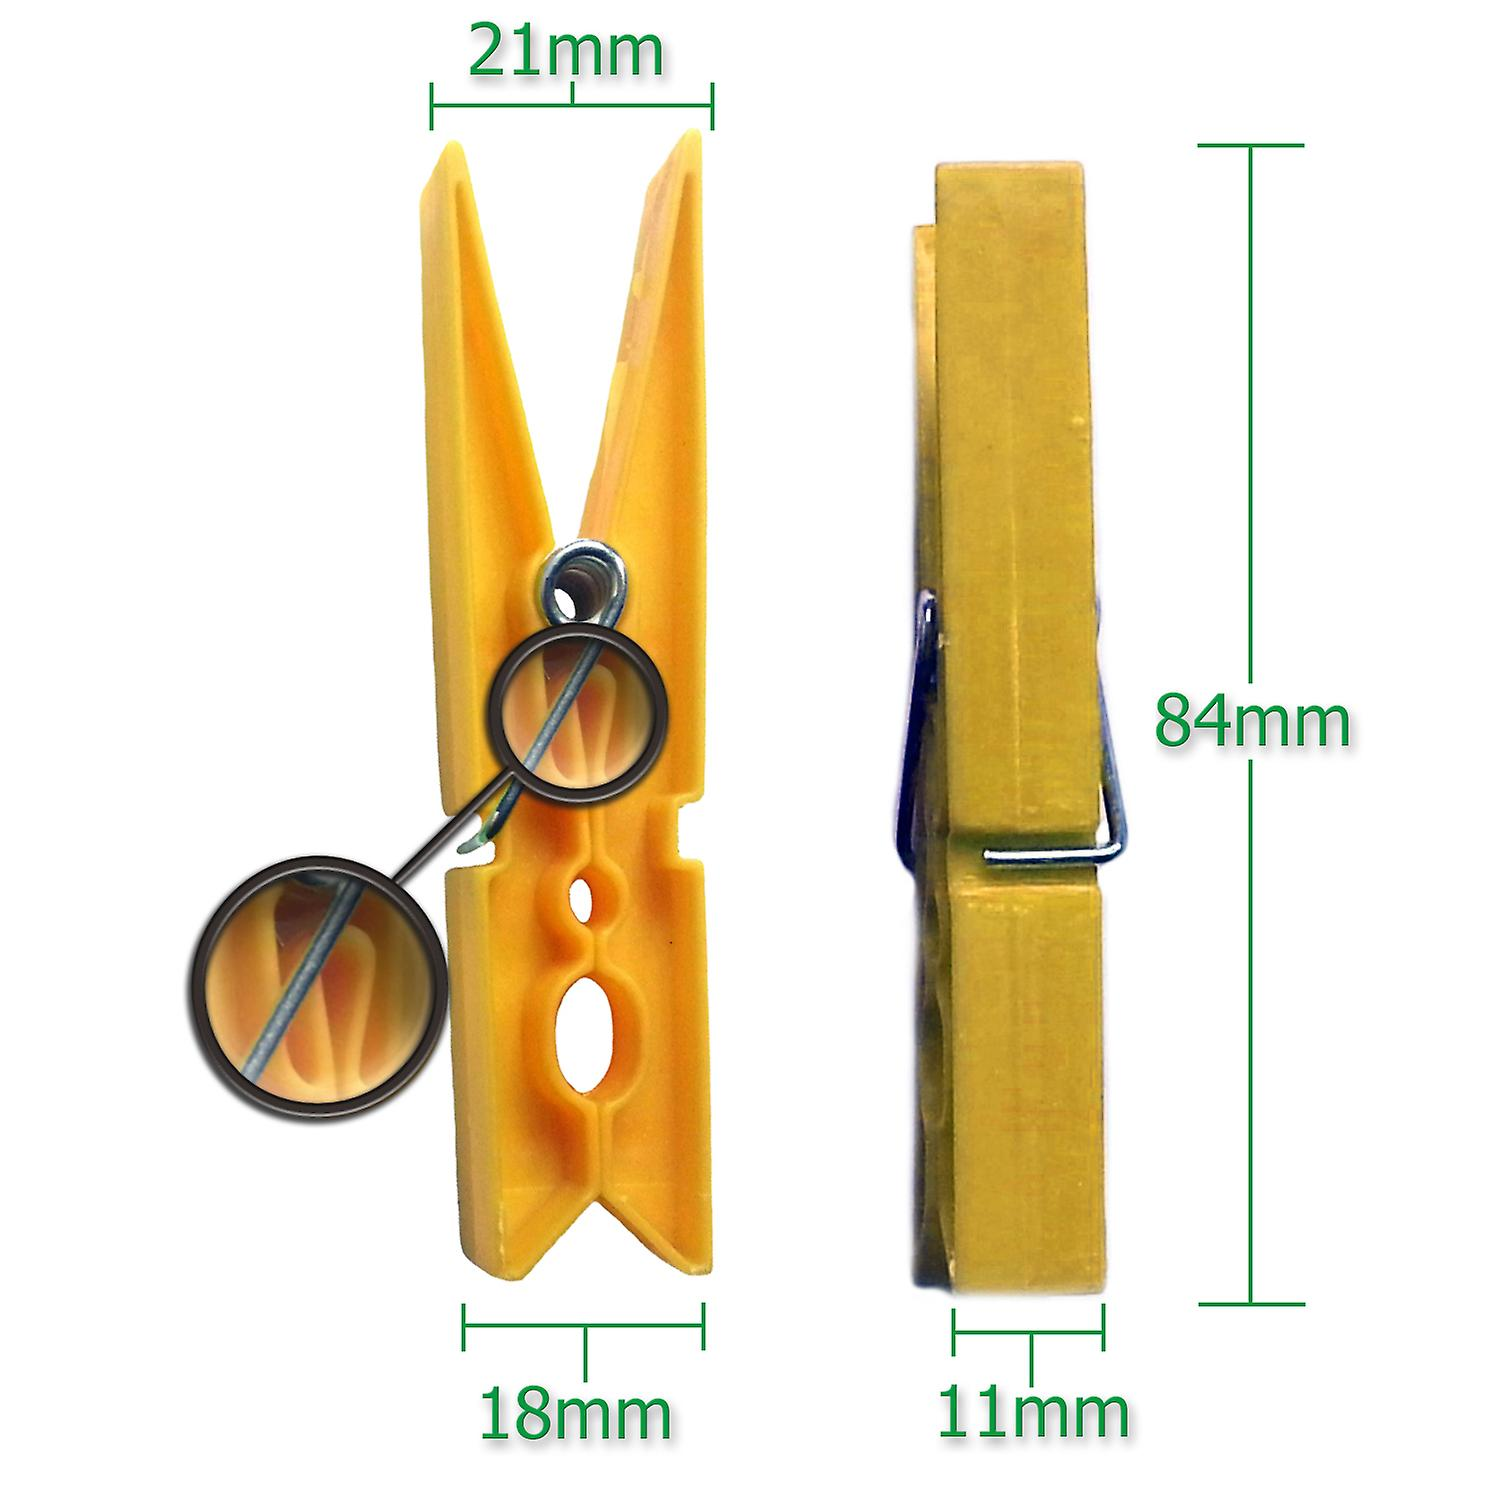 Simply Direct Yellow Strong Big Robust Plastic Clothes Washing Line Pegs/Clips - 8.5cm Long - Also Useful for Arts and Crafts